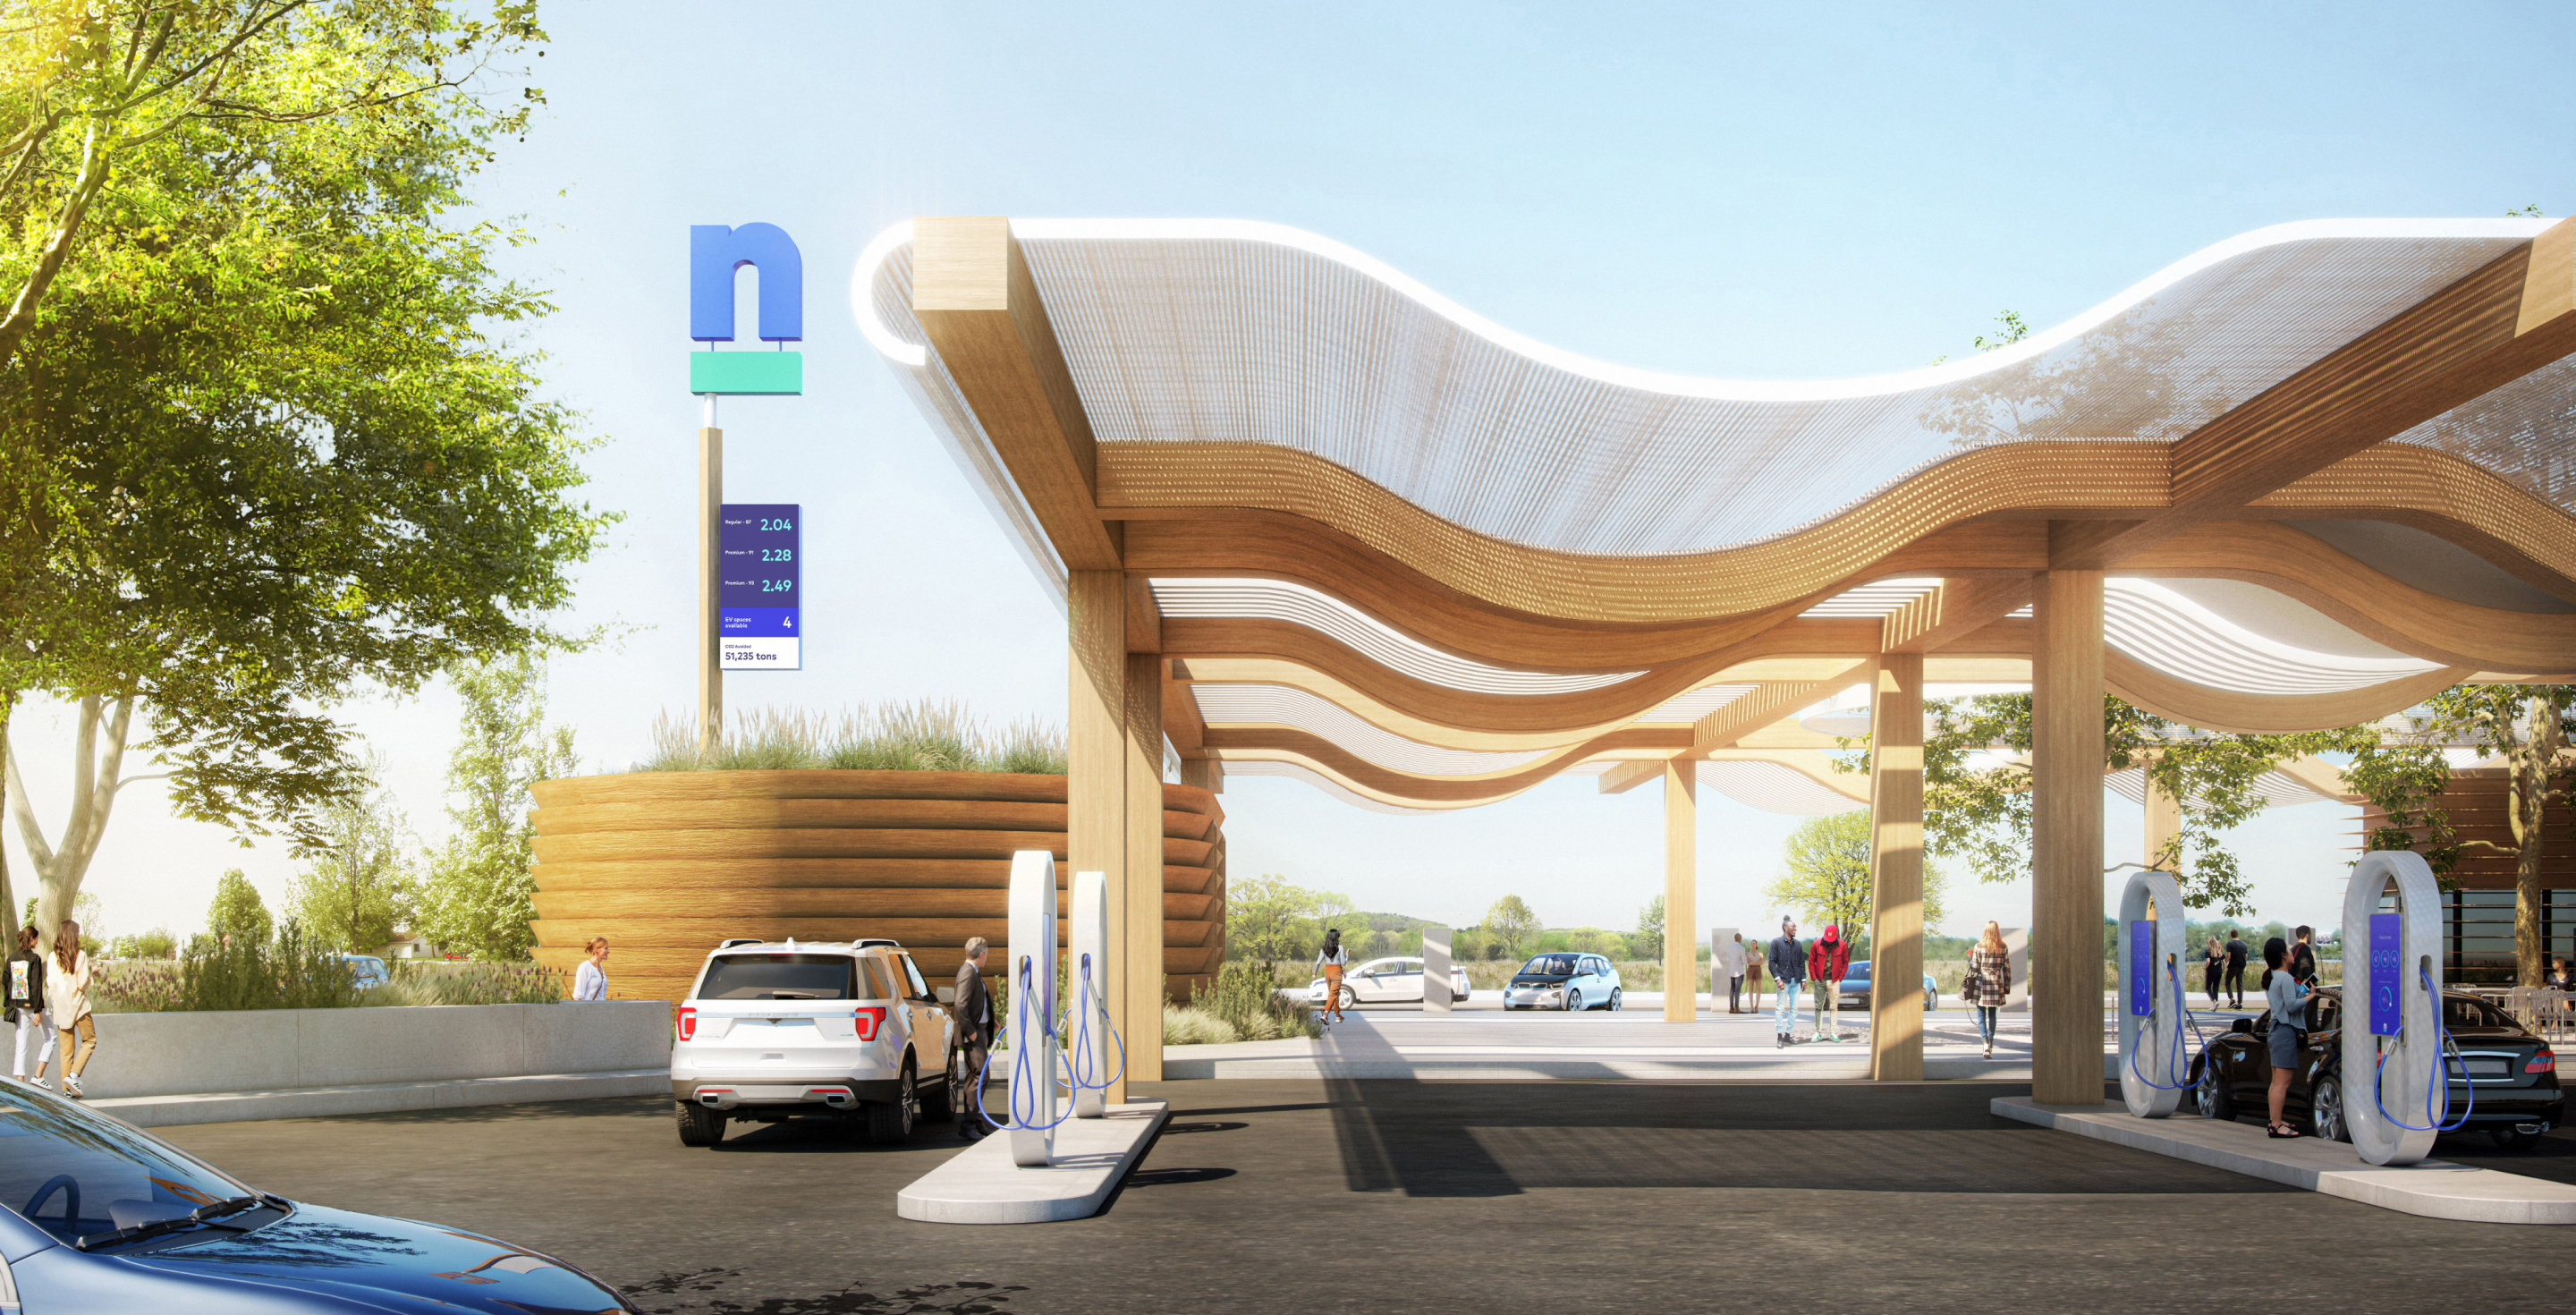 A photo-realistic rendering of the pumps at the future Nacero gasoline station